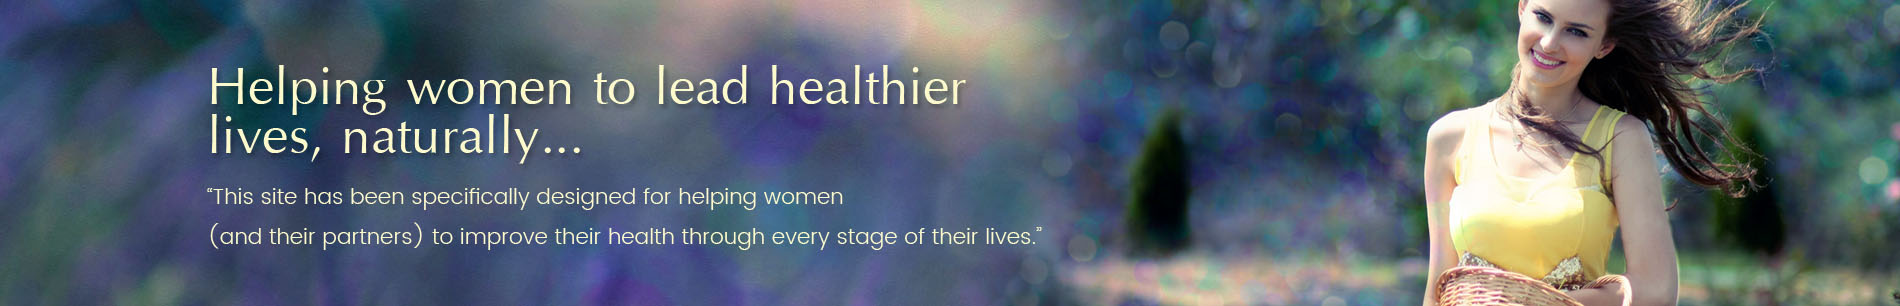 Helping women to lead healthier lives, naturally...